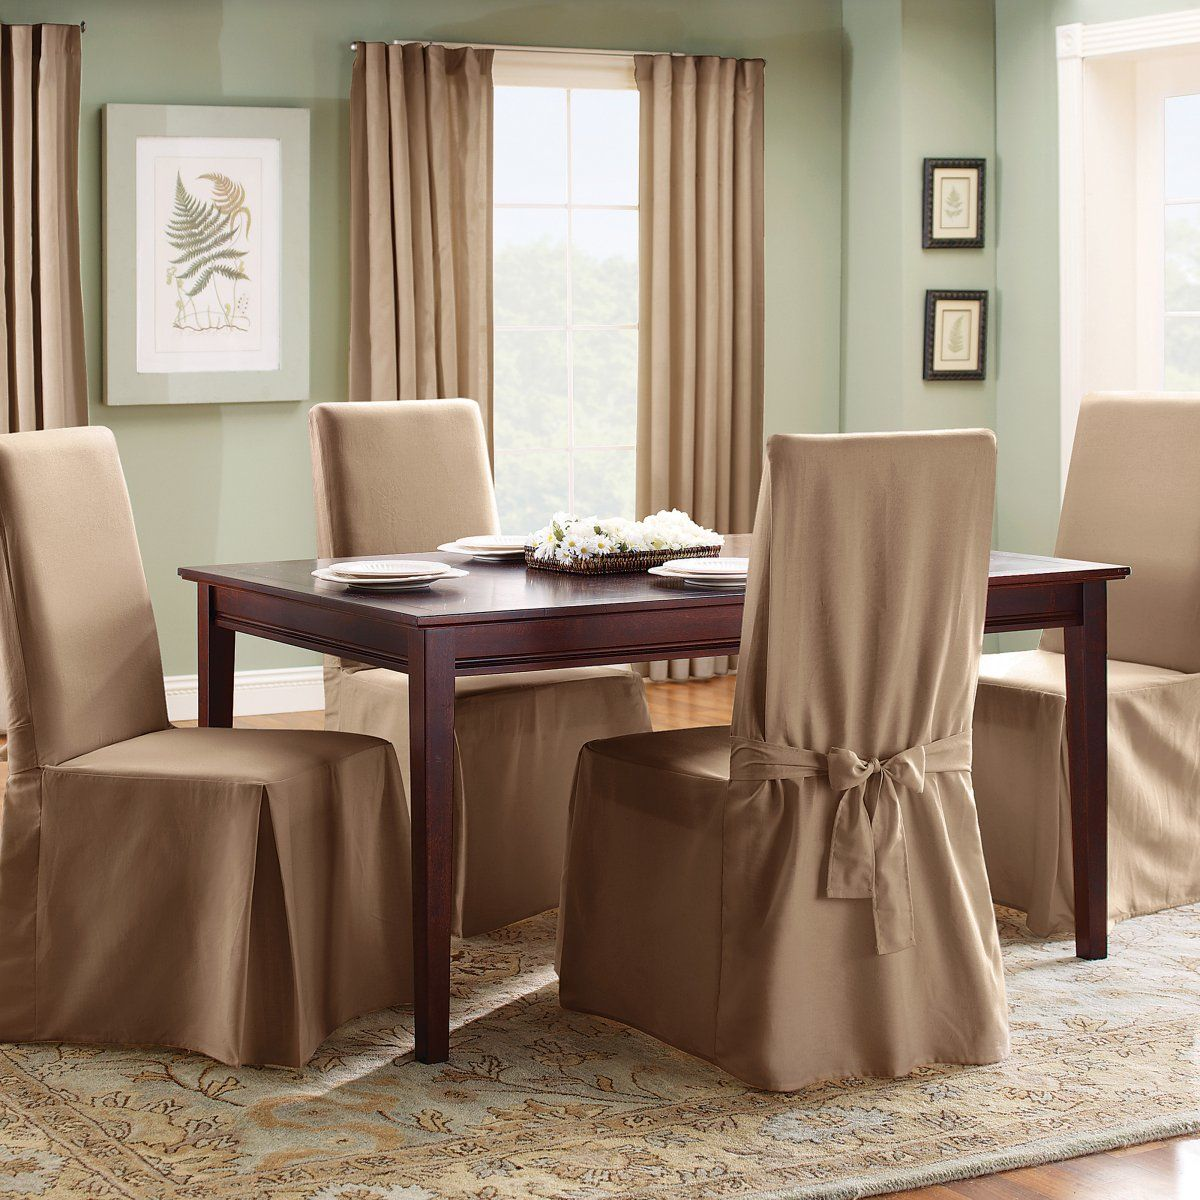 Wonderful Slipcovers For Dining Room Chairs In Brown Featuring Rectangular Plus Sophisticated Rug